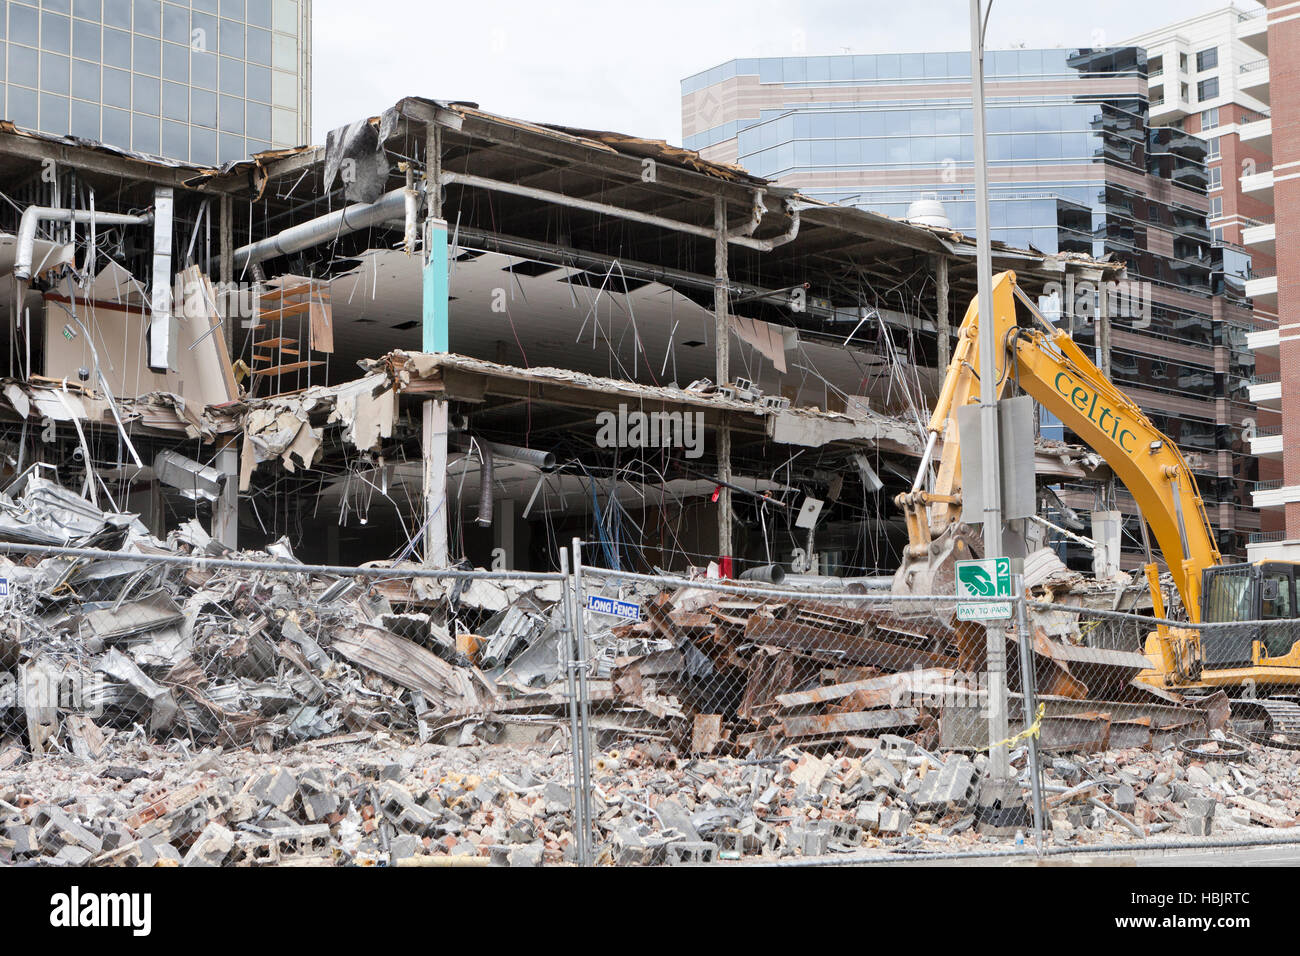 Urban building demolition site - Arlington, Virginia USA - Stock Image